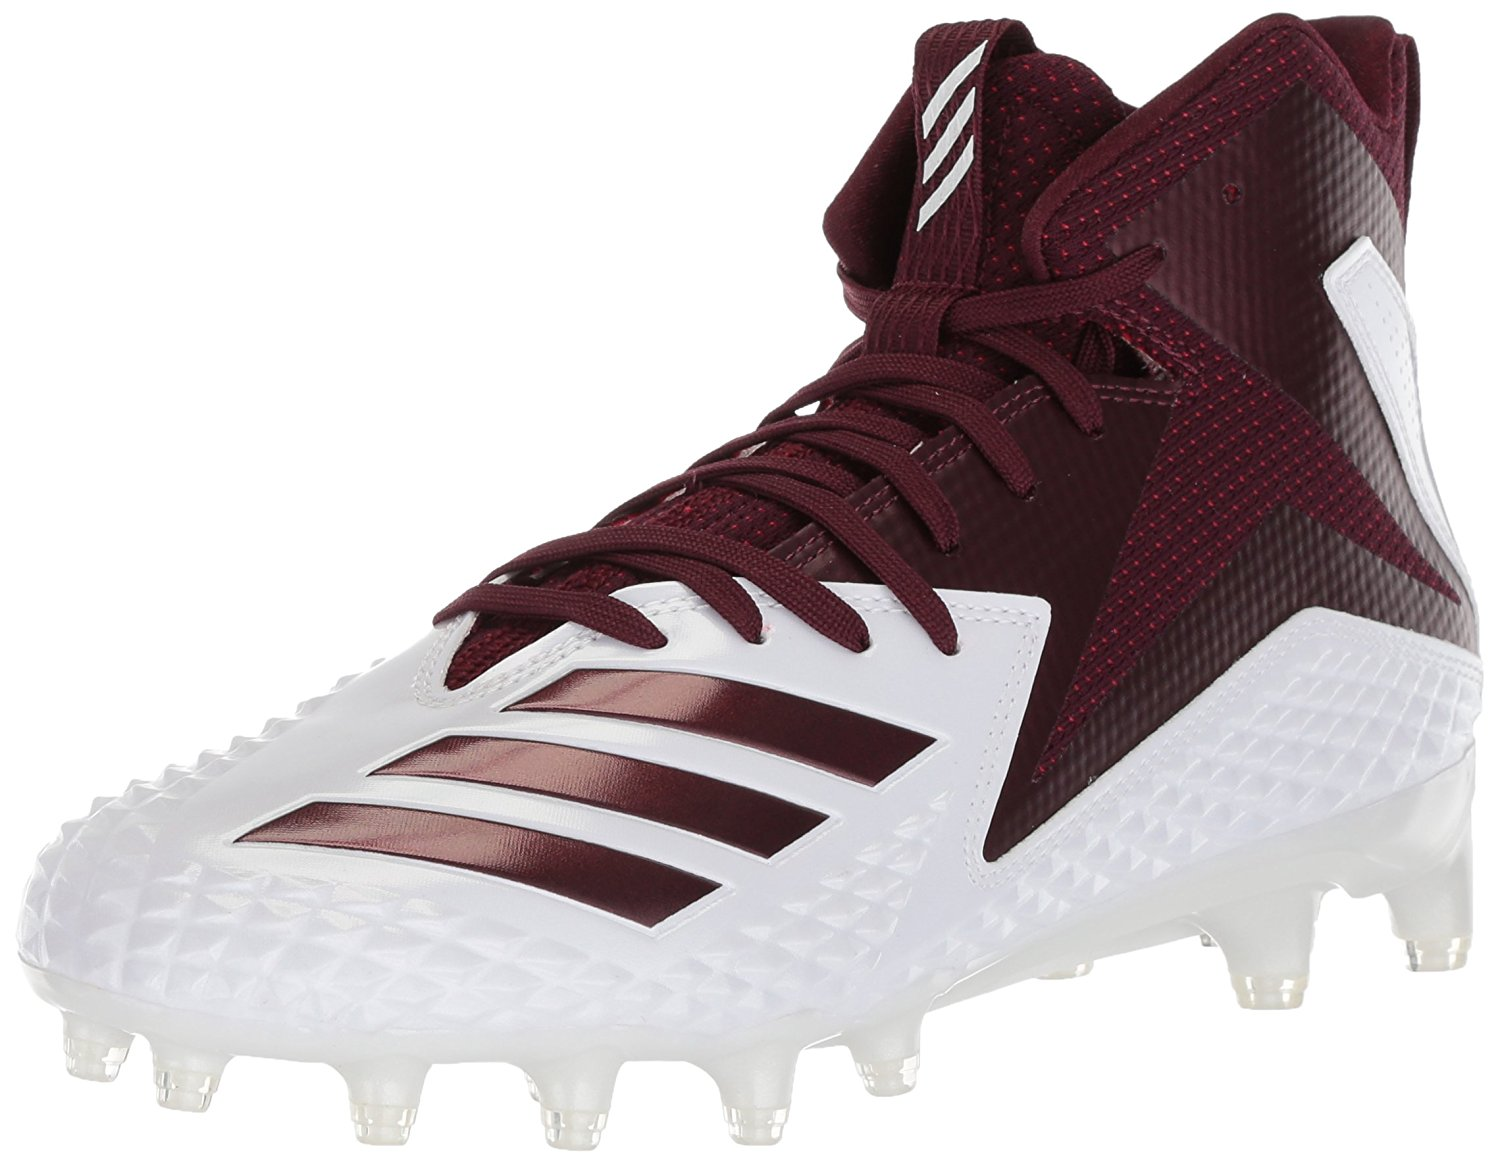 852dd8ec927d adidas Men's Freak X Carbon Mid Football Shoe, White/Maroon/Maroon, Size